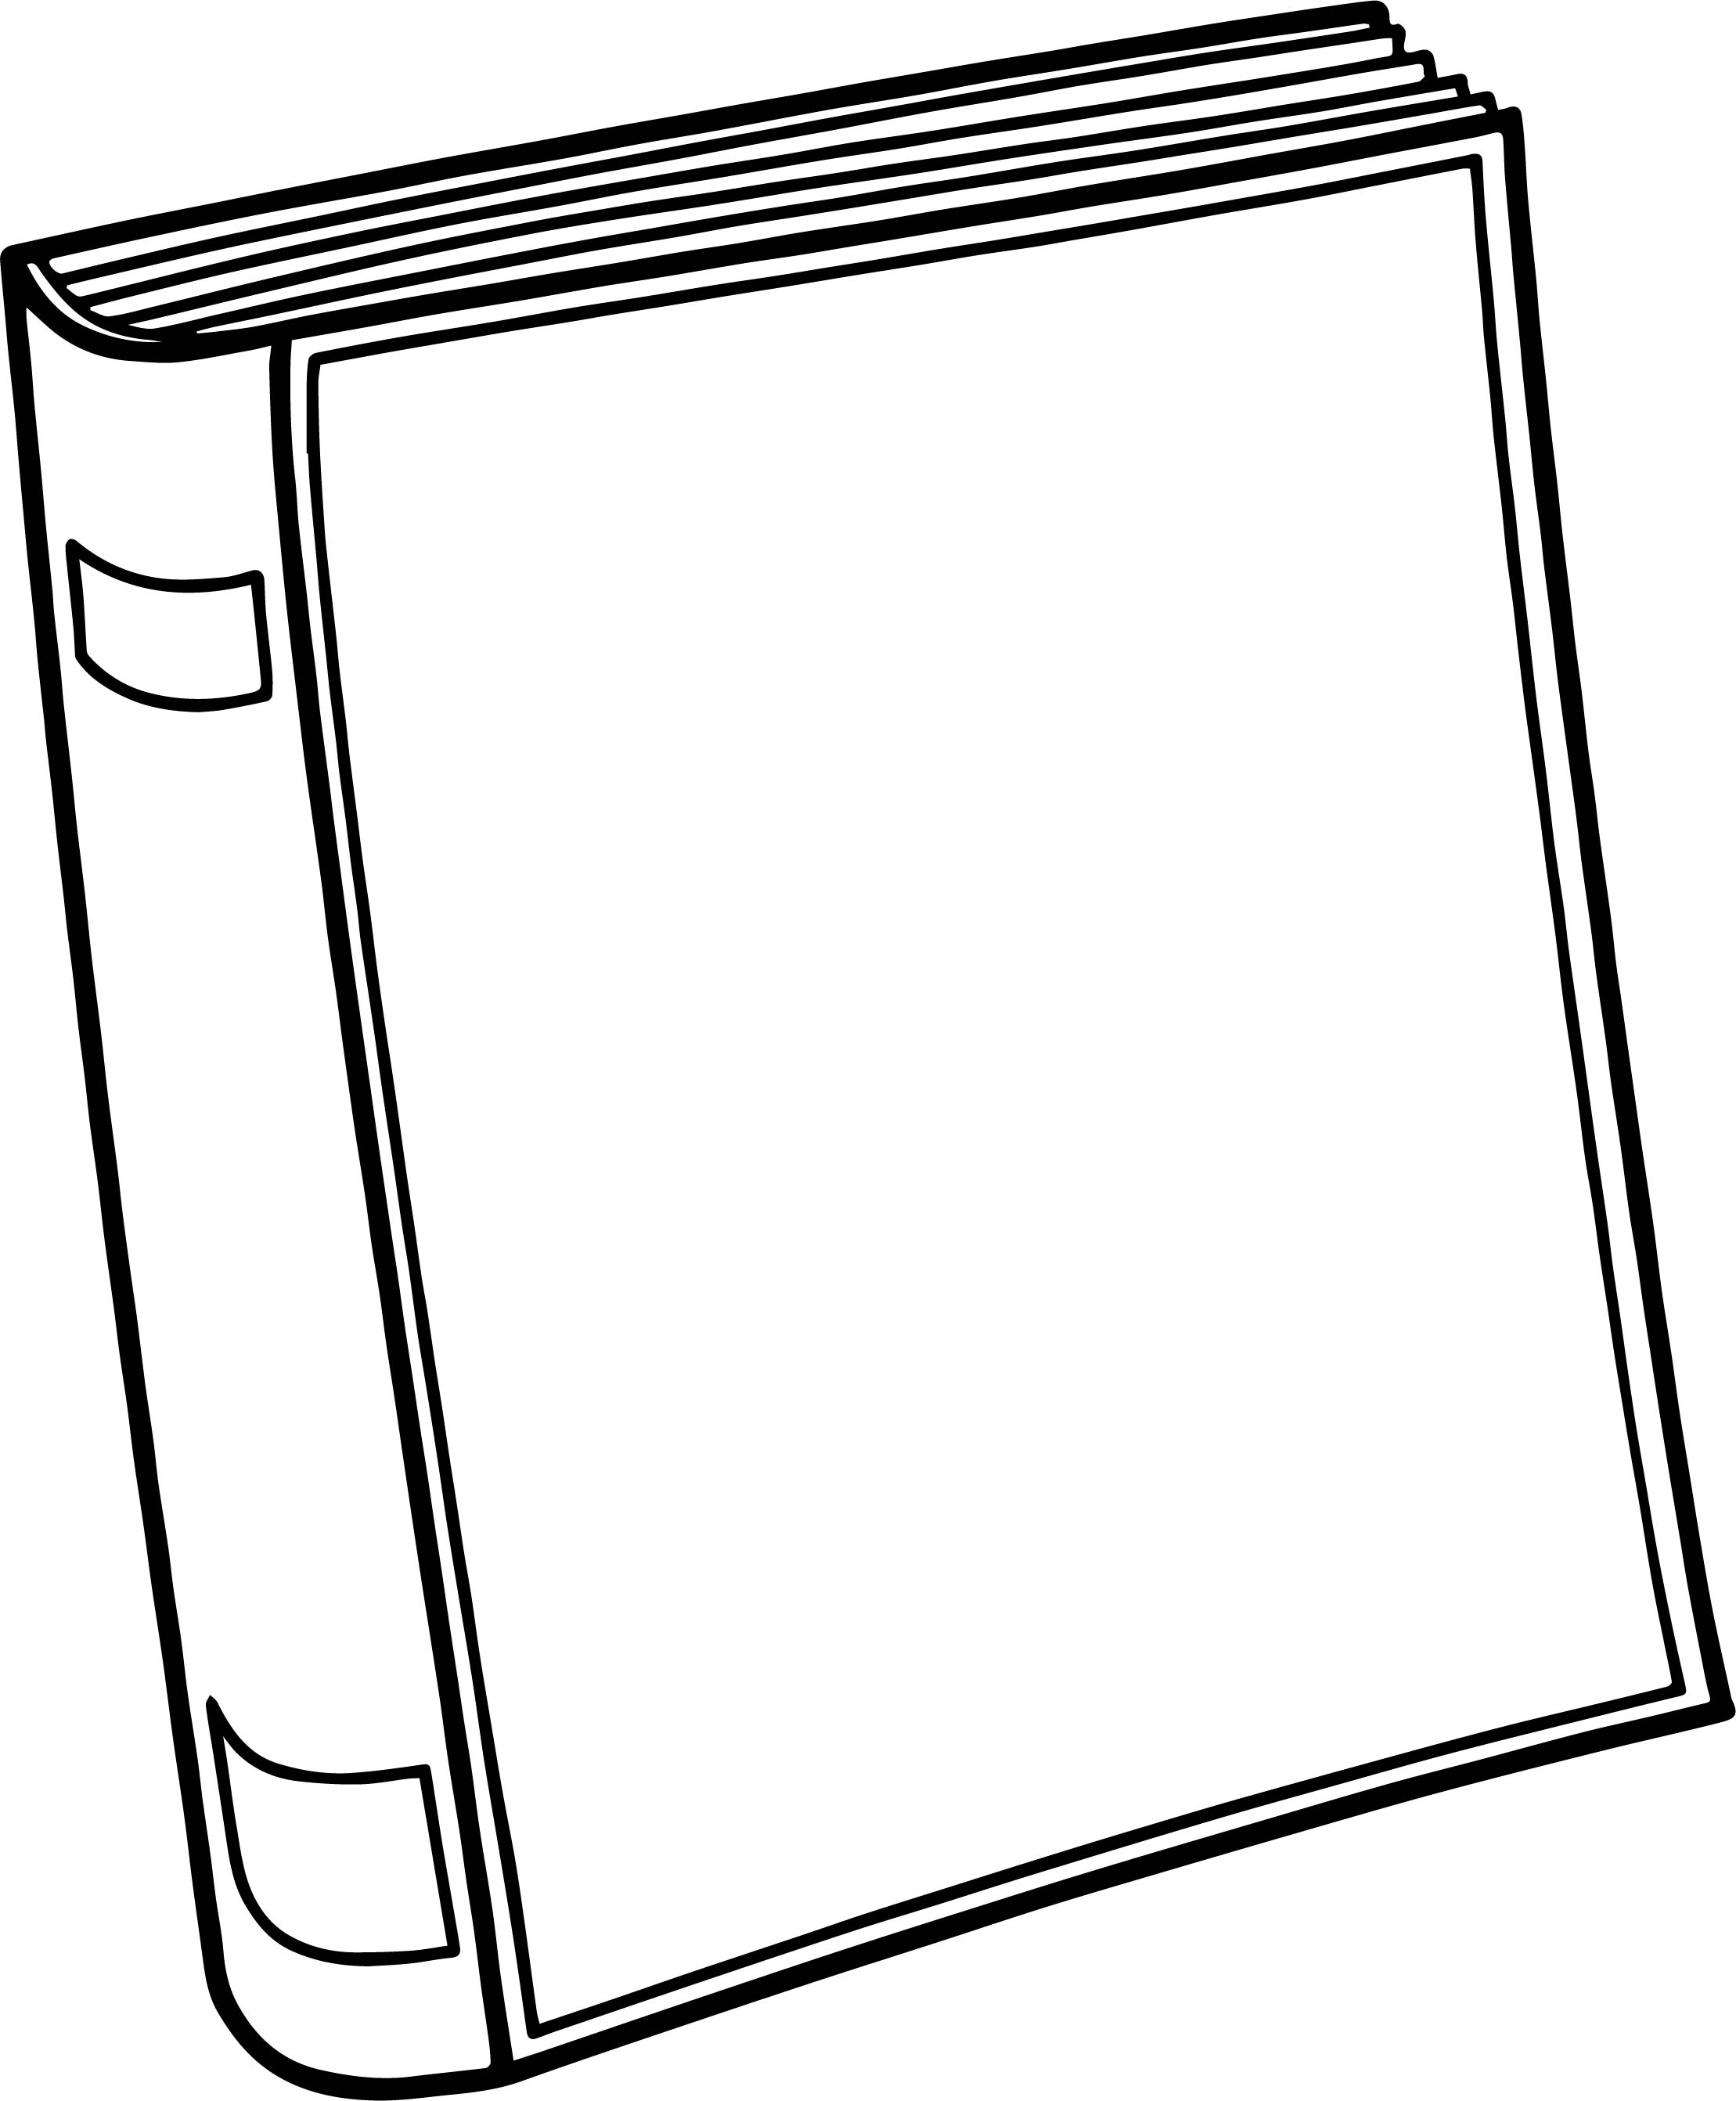 Any Old Book Coloring Page